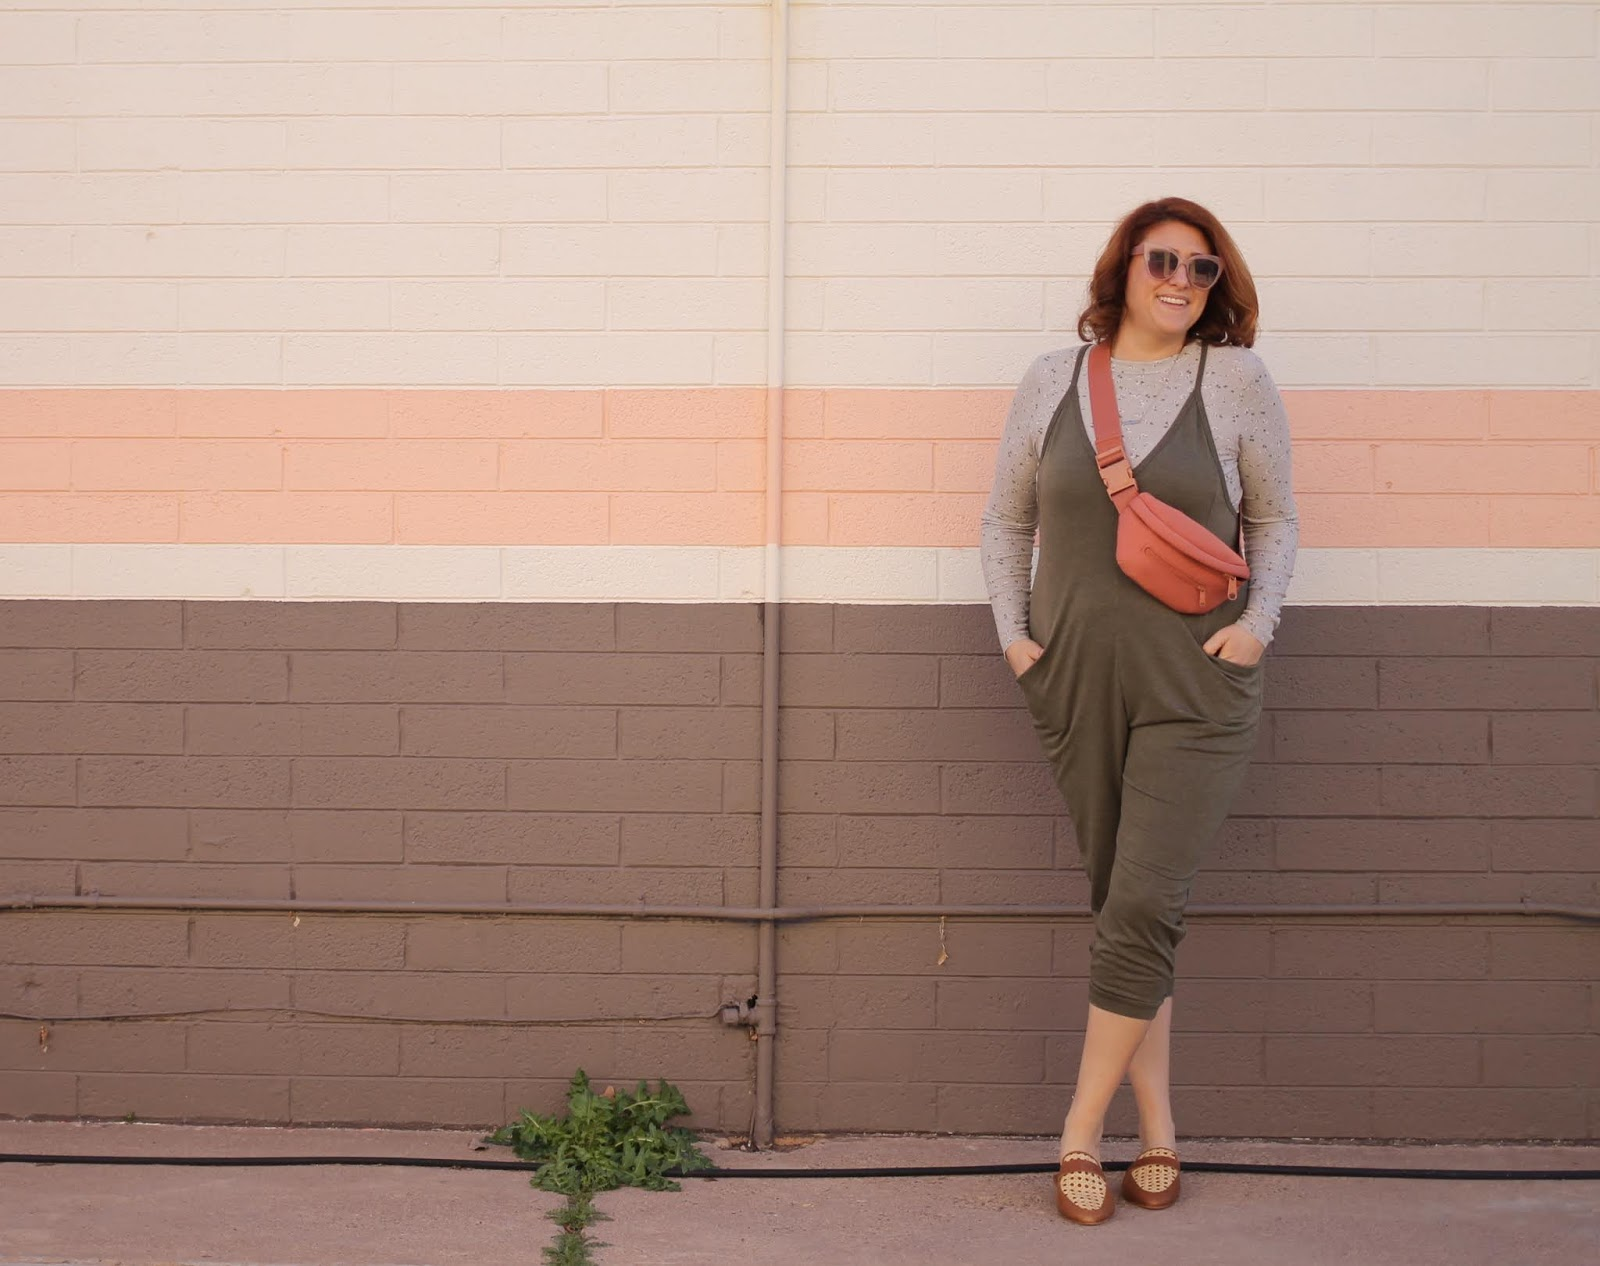 Dagne dover ace fanny pack, target, wild fable jumpsuit, redhead hair style, Dyson air wrap